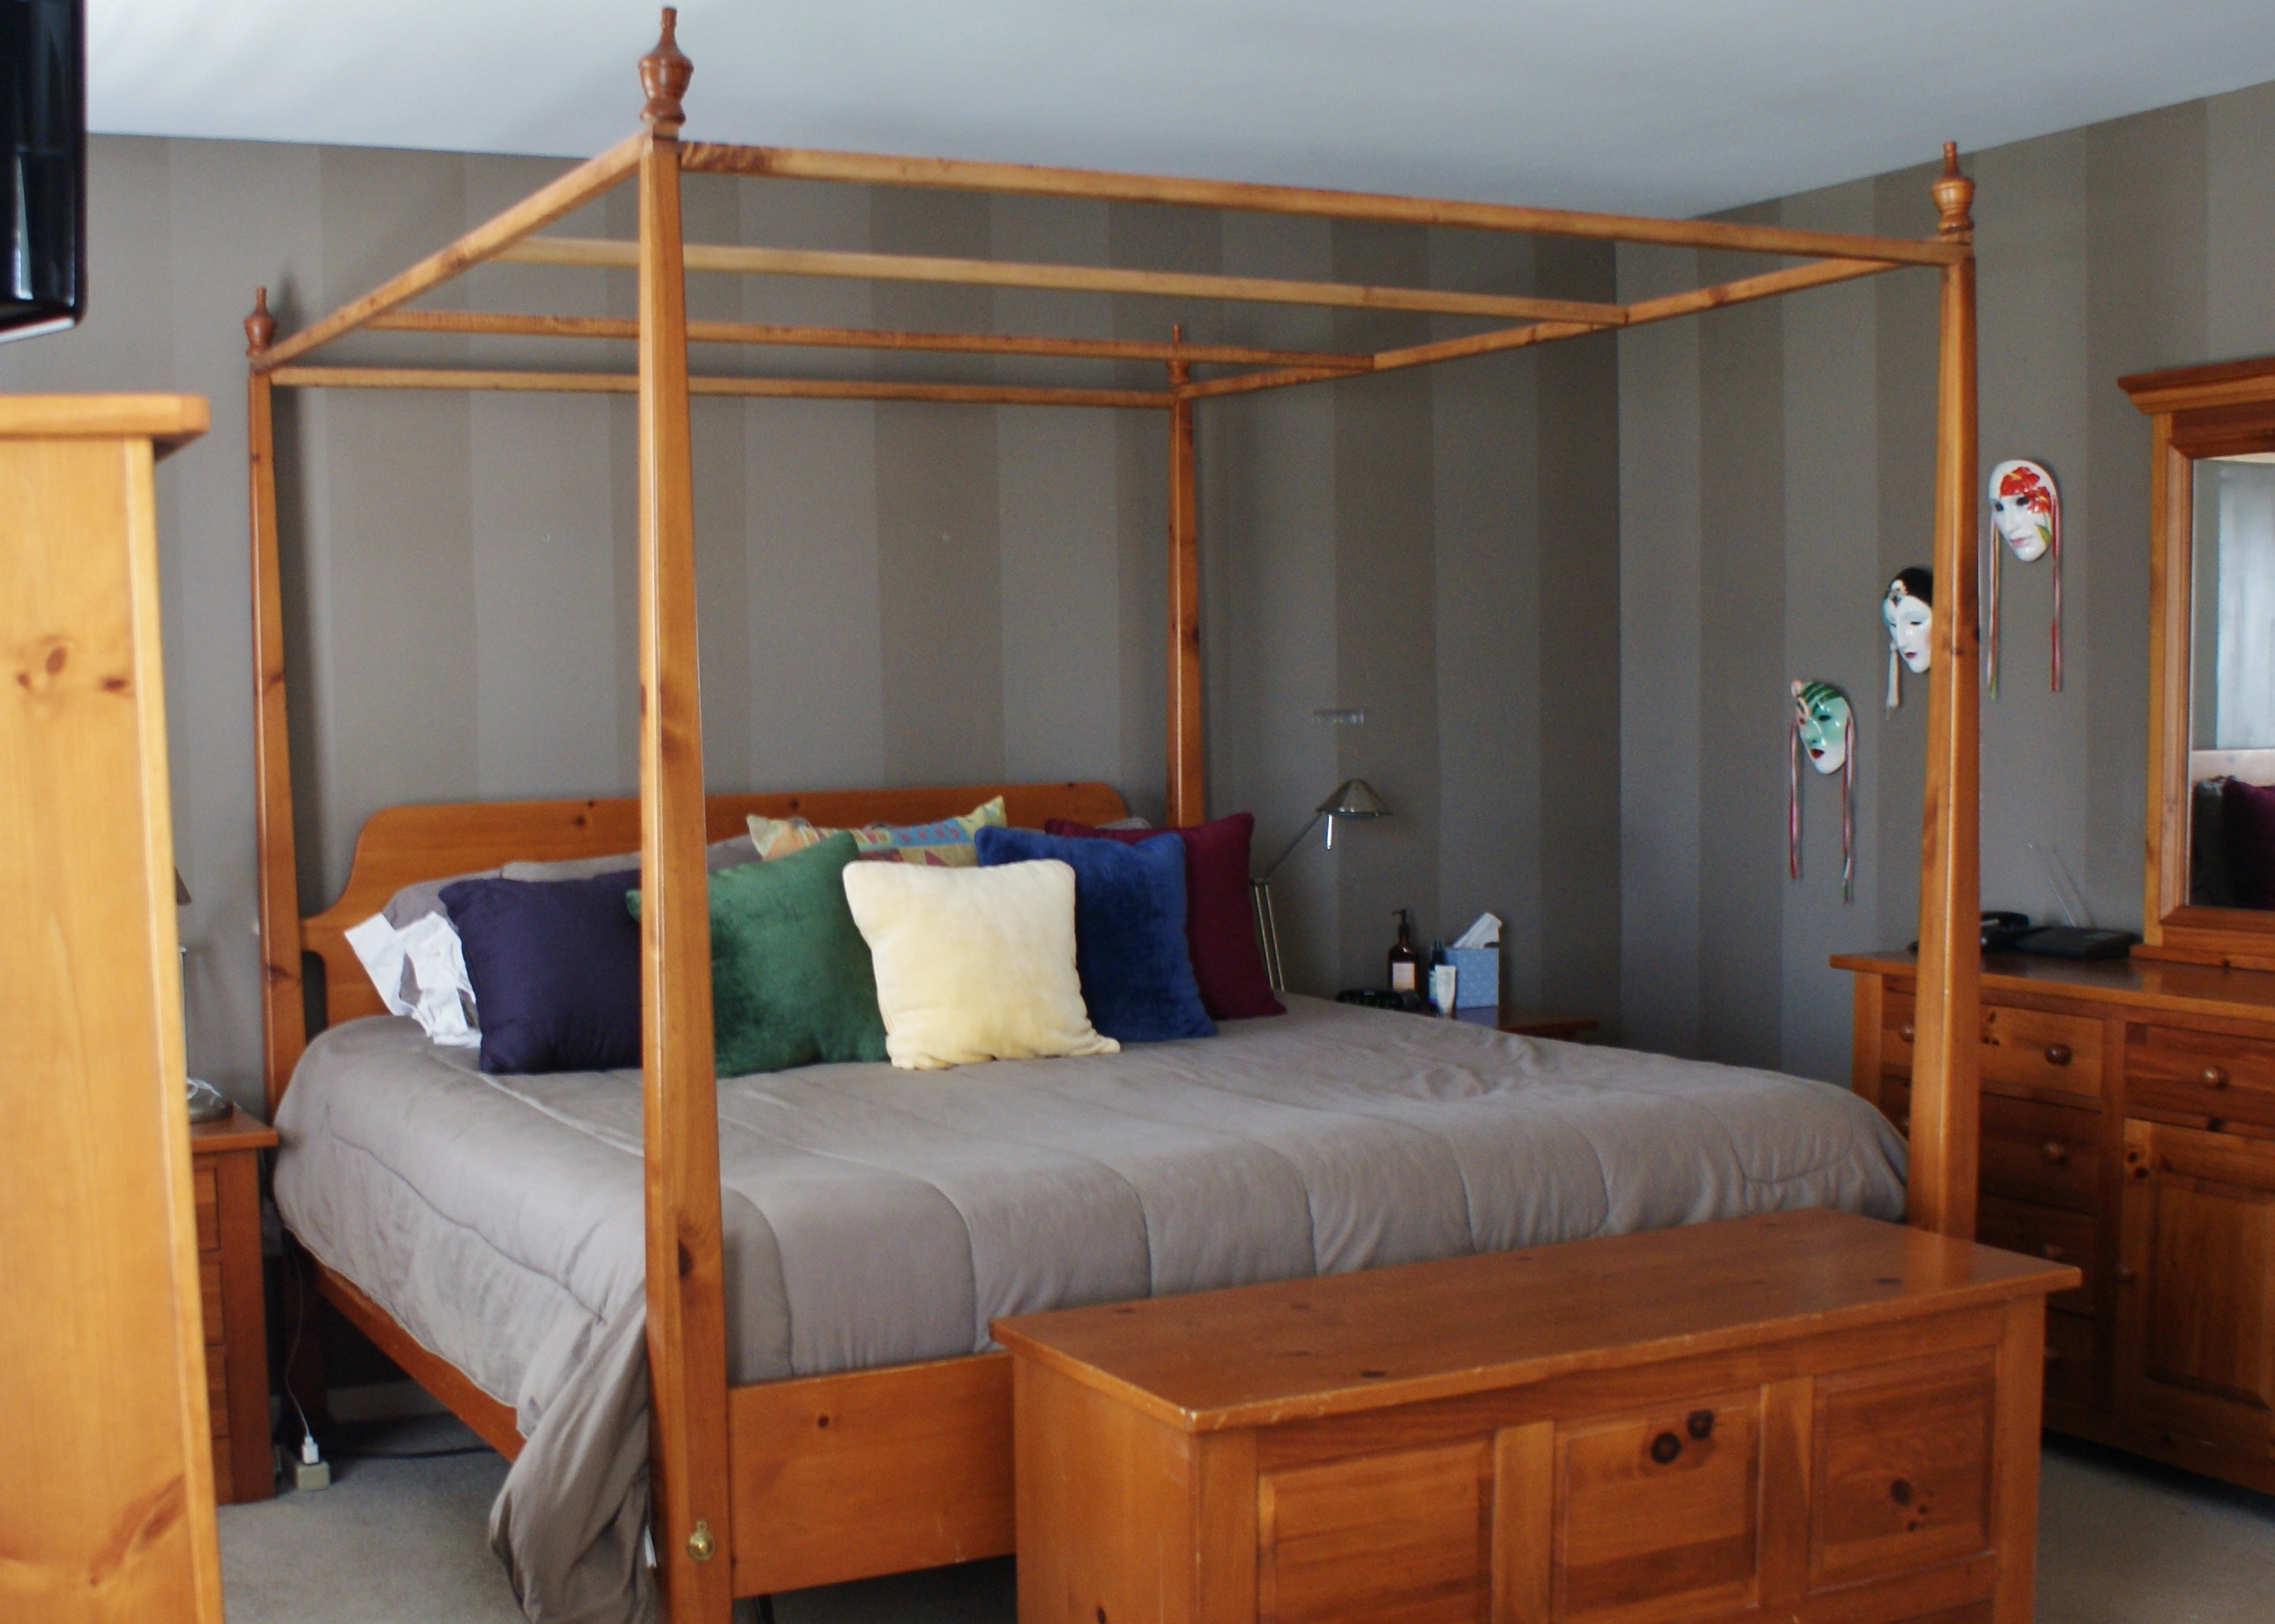 Broyhill Solid Pine King Size Canopy Bed ... & Broyhill Solid Pine King Size Canopy Bed : EBTH